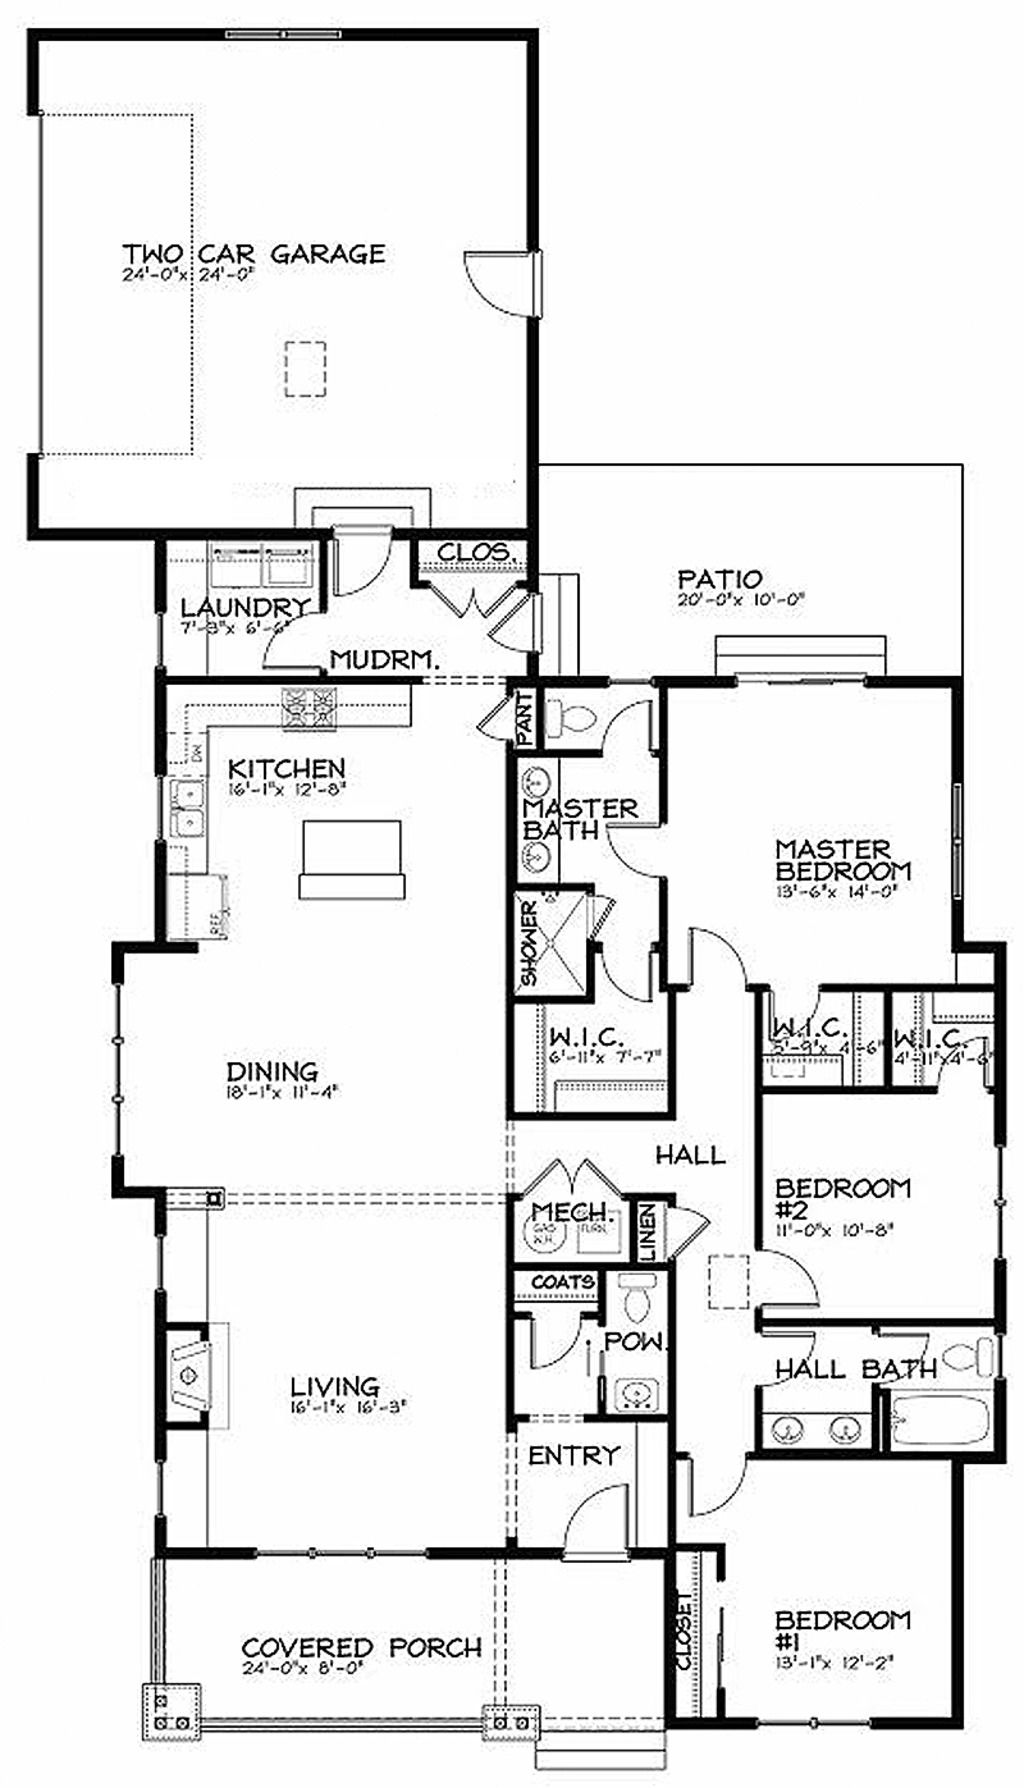 bungalow style house plan 3 beds 2 5 baths 1887 sq ft